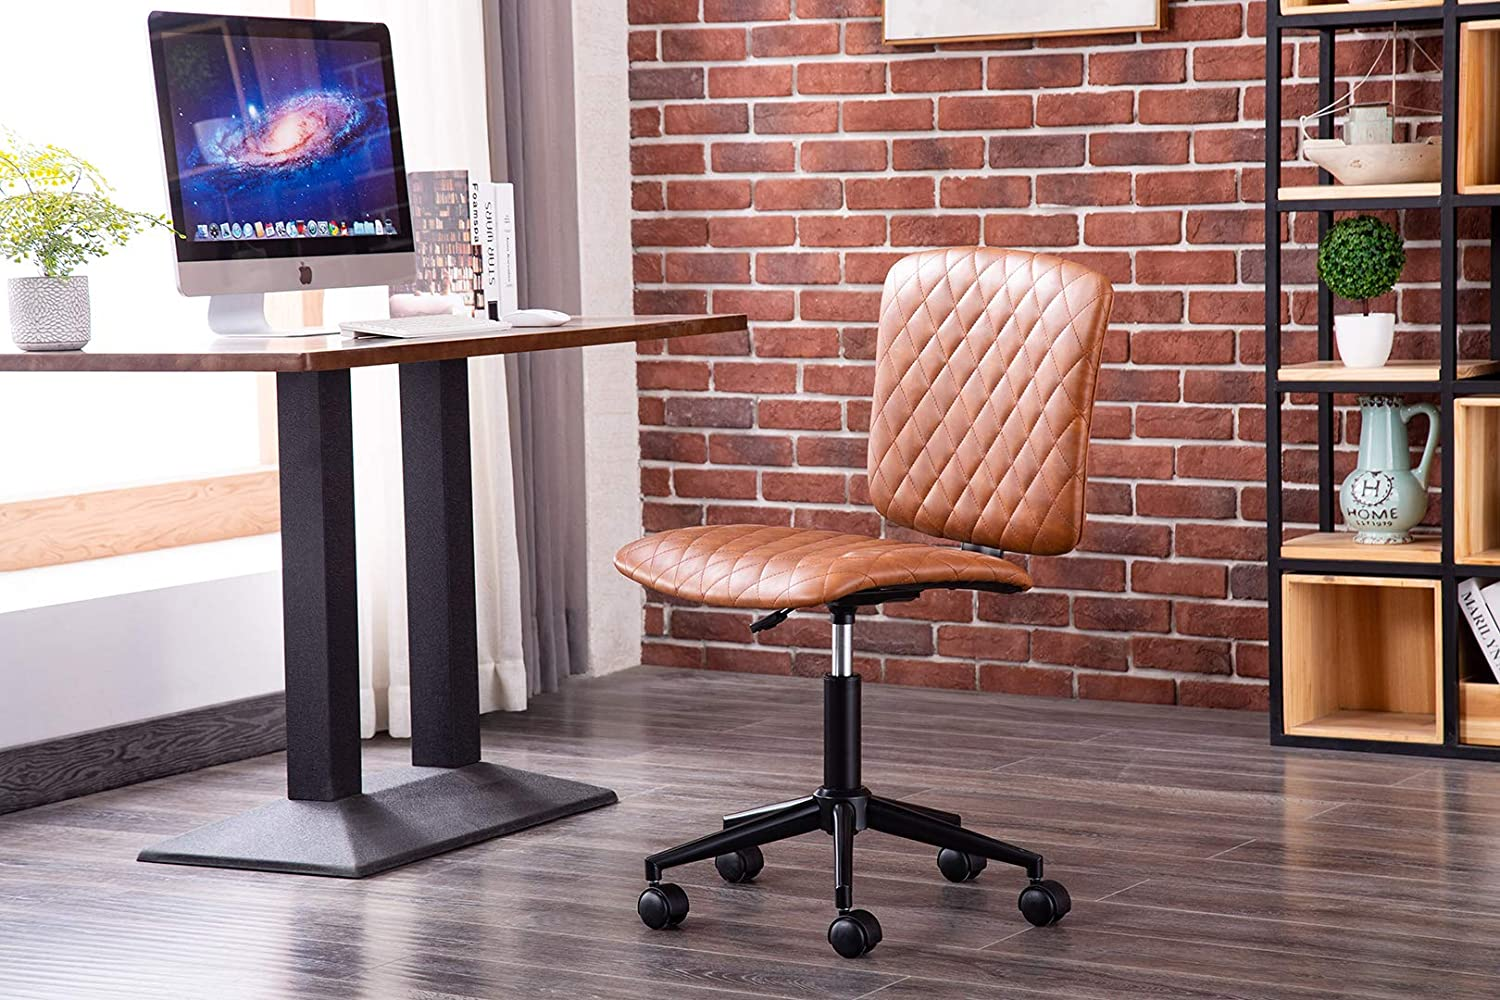 Porthos Home Orlin Swivel Office Chair with Instant Height Adjustment, Diamond Ribbed PU Leather Upholstery and Roller Wheels (Nifty Armless Design for Home Studios and Small Offices)